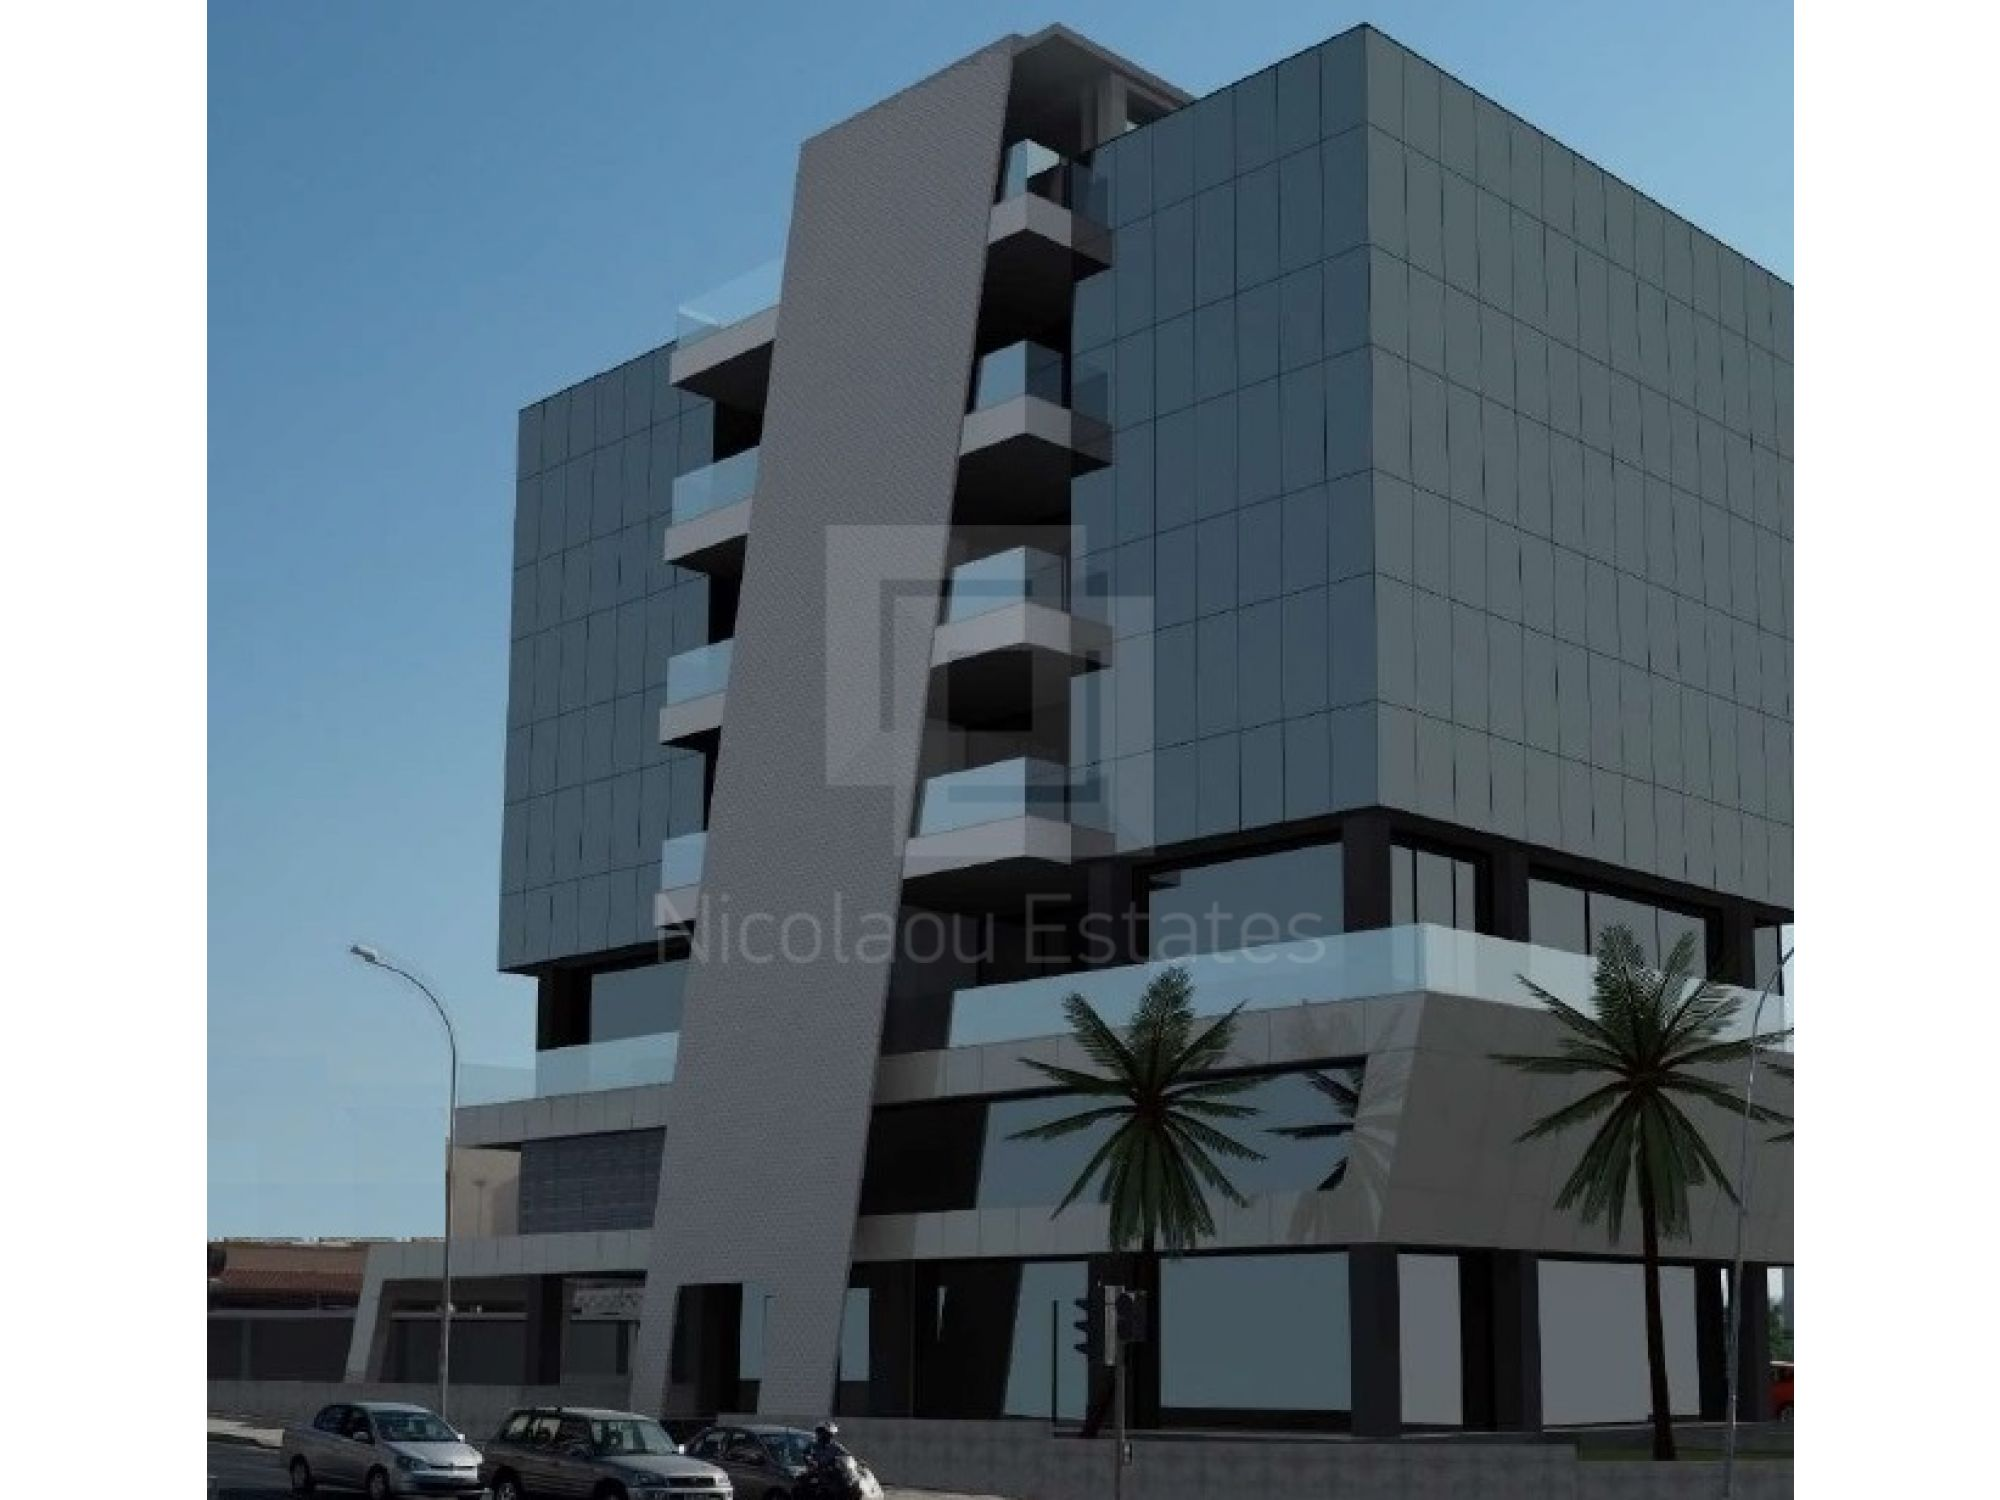 Large Brand new and luxury office space for rent on a main commercial road of Limassol